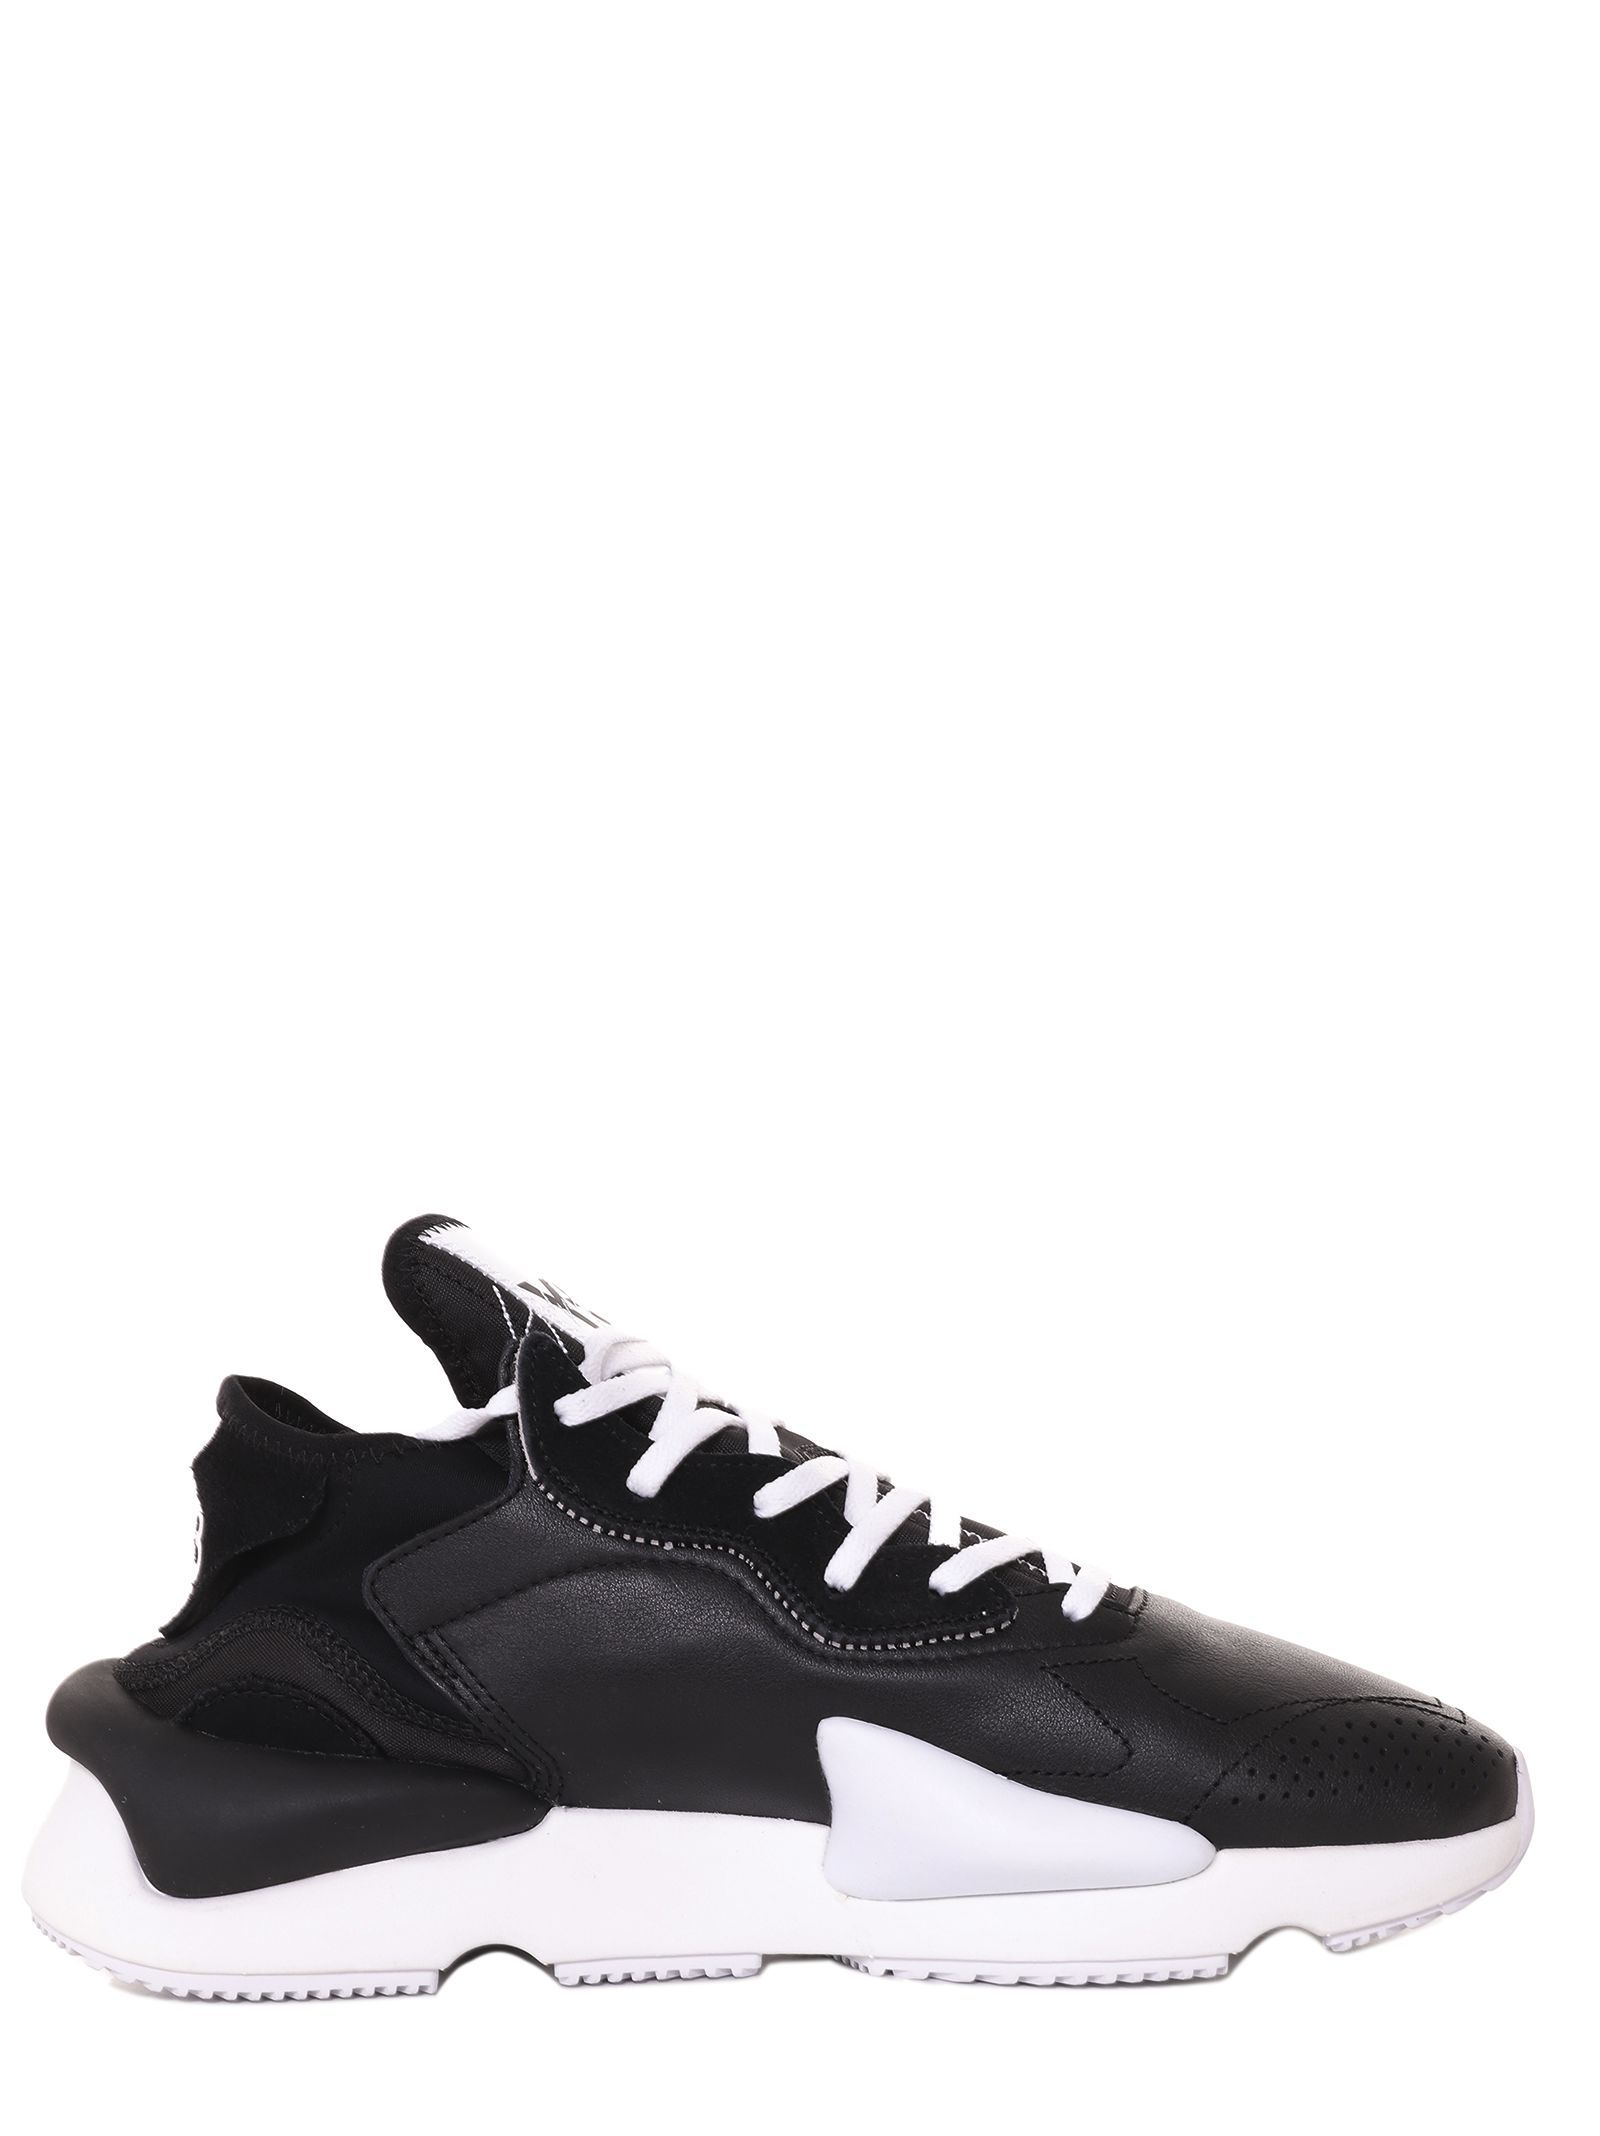 5d9817940c7 Y-3 BLACK KAIWA.  y-3  shoes